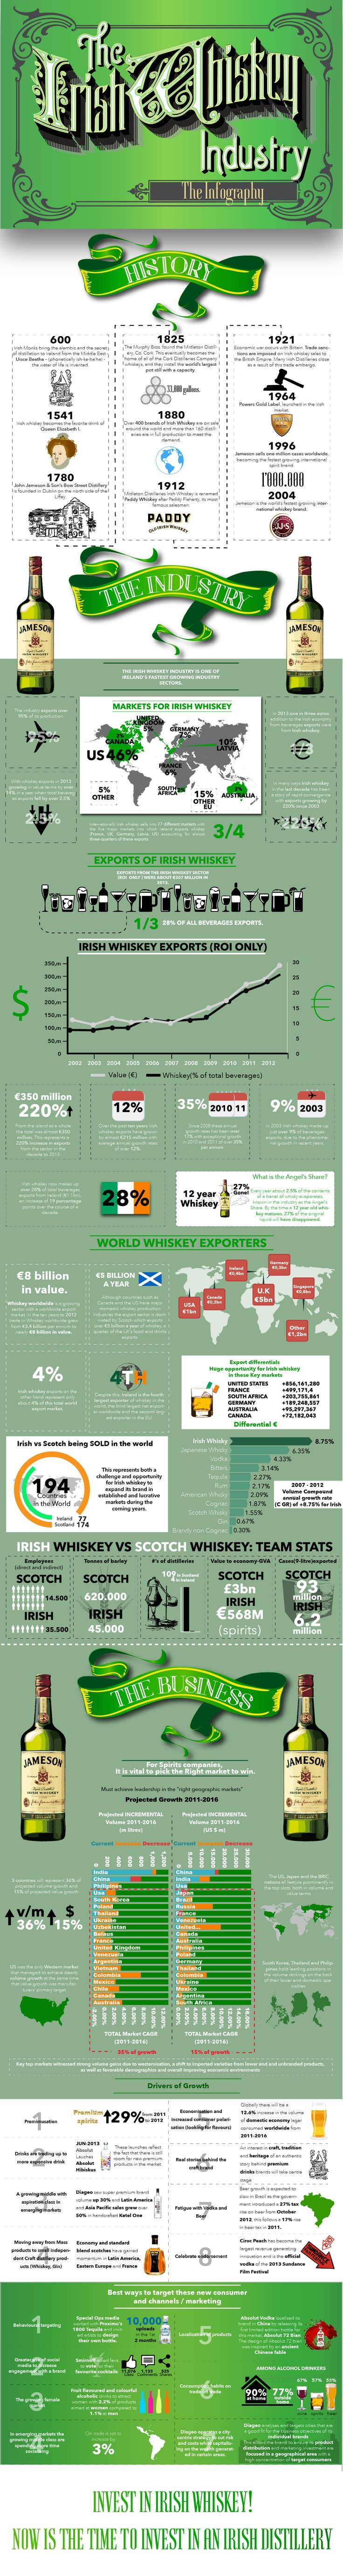 The Irish Whiskey Infographic